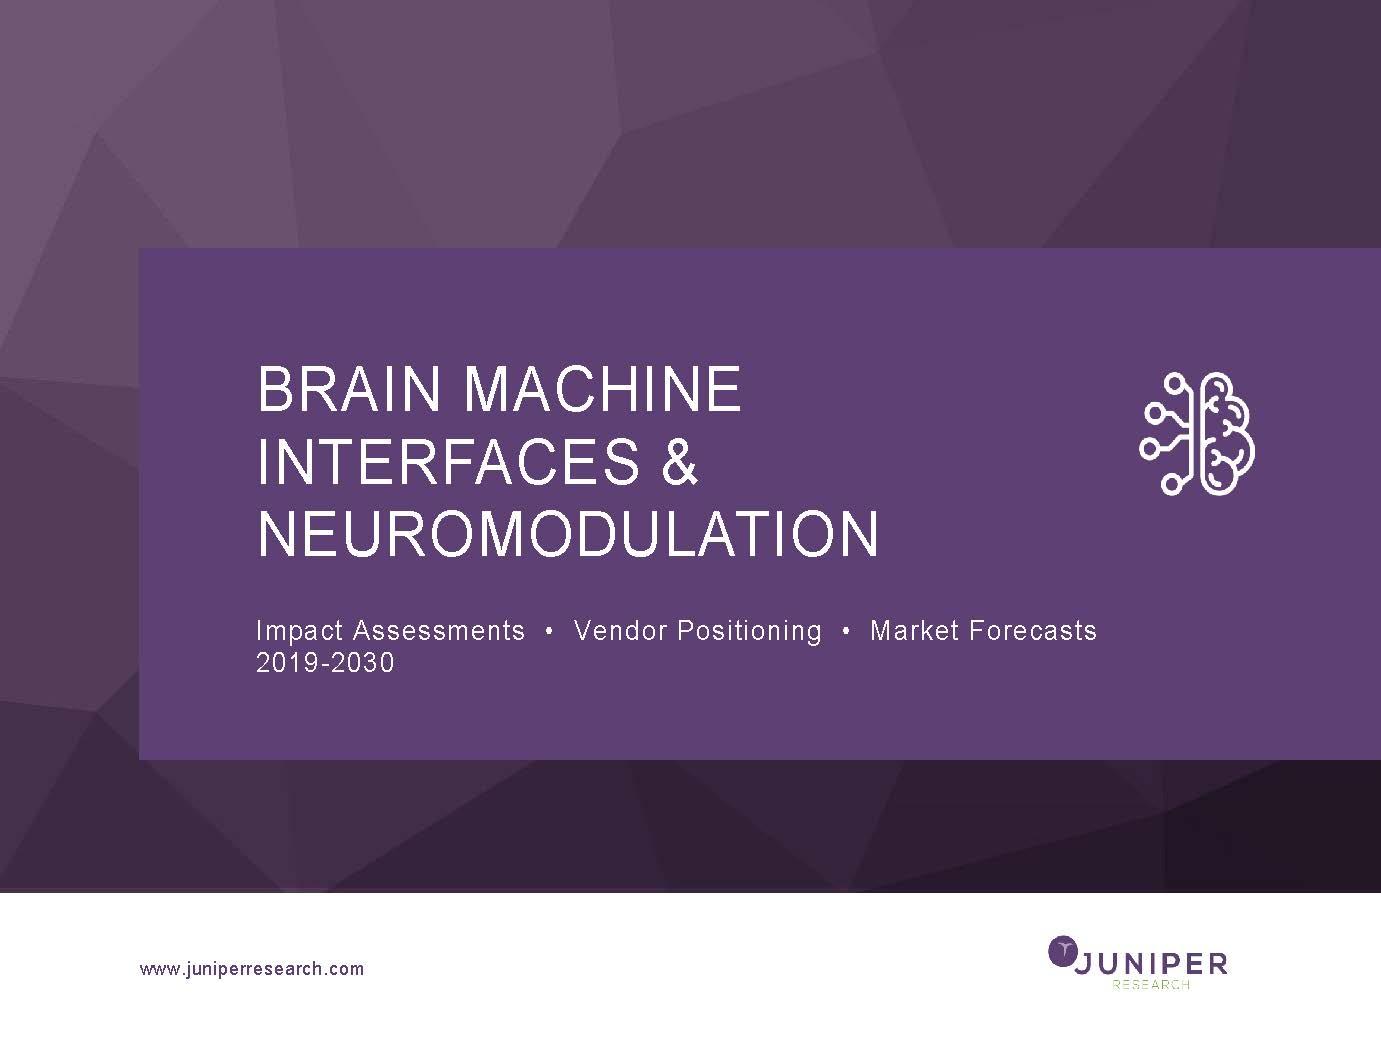 Brain Machine Interfaces & Neuromodulation